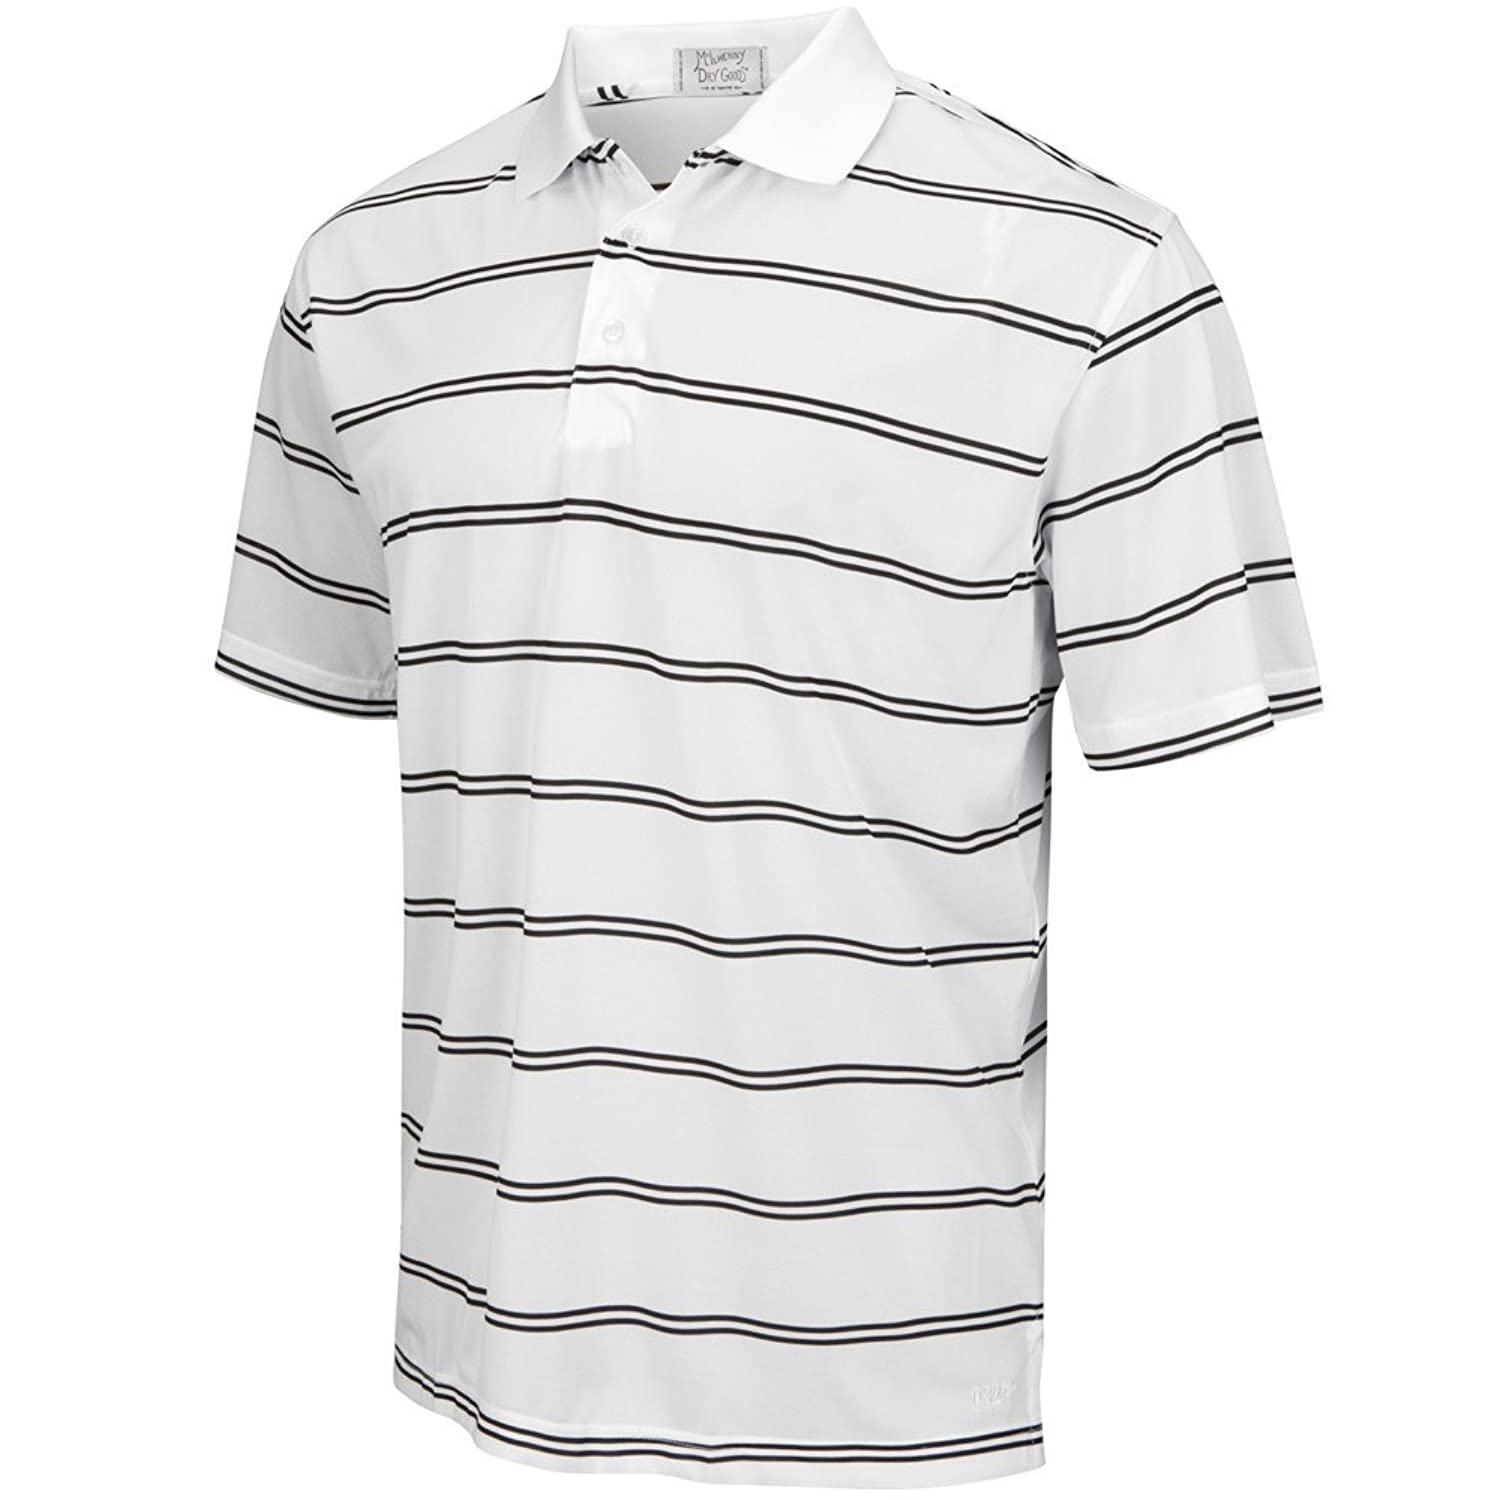 Club Room Men's Striped Estate Performance Polo Shirt Large L Sweetwater Blue